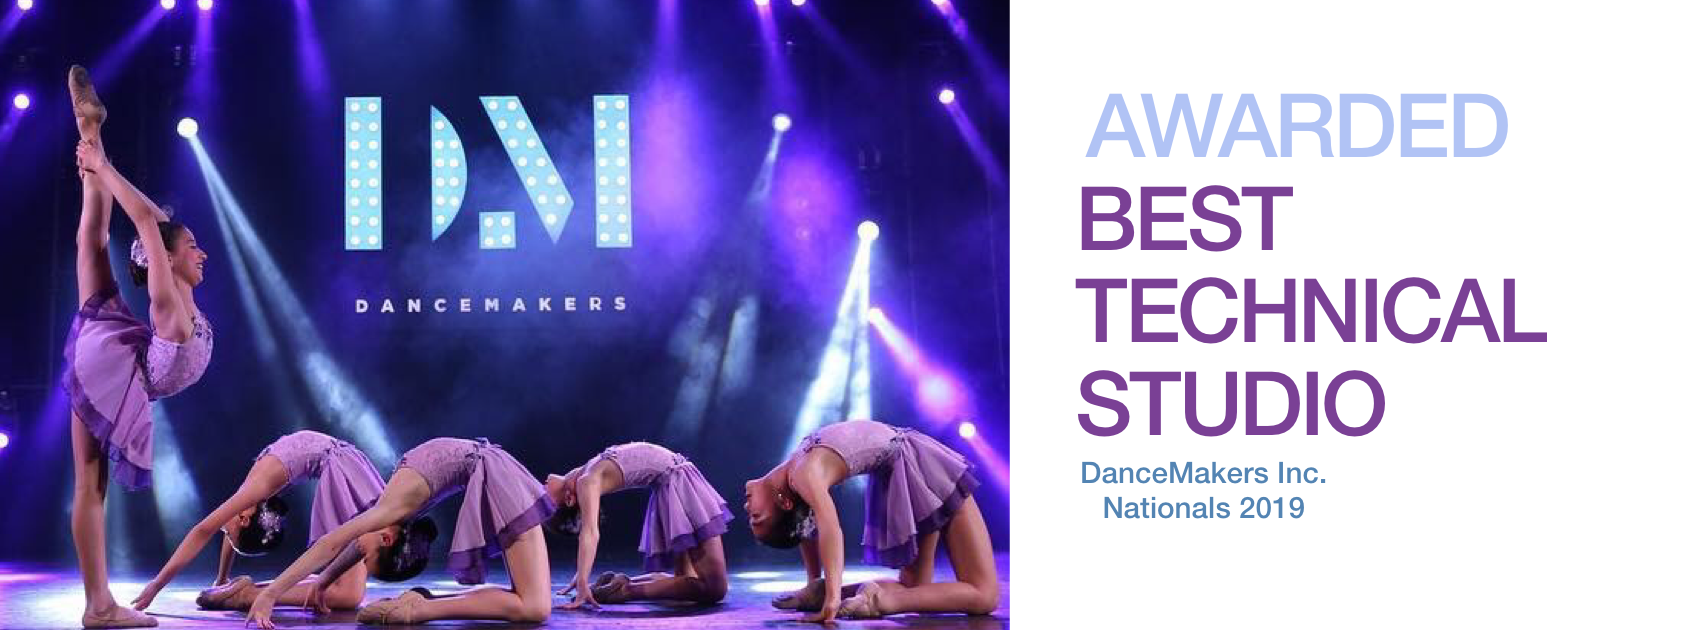 Best Technical Studio 2019 DanceMakers Nationals